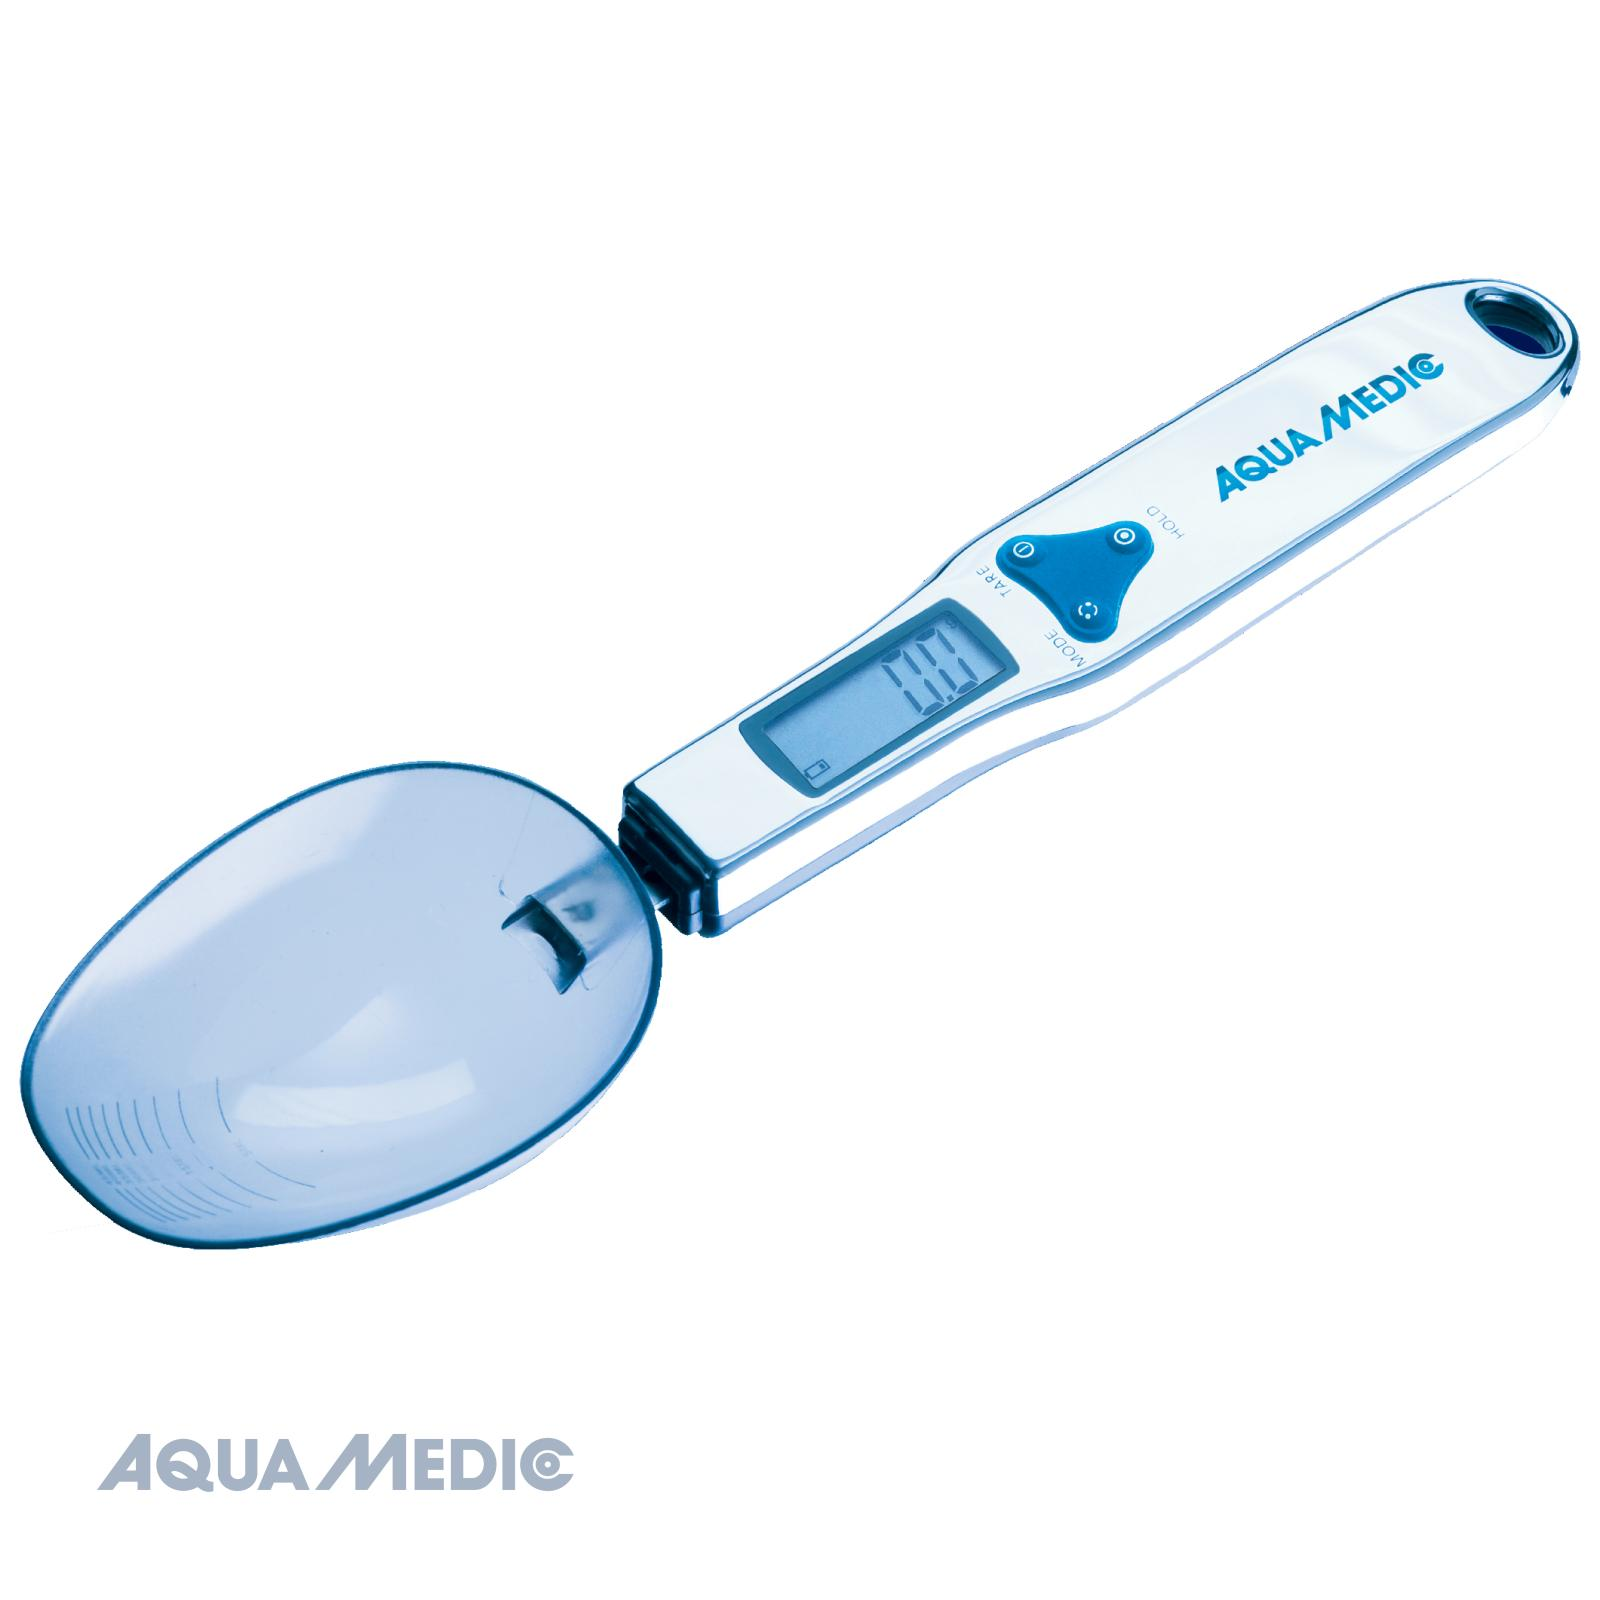 Aquamedic Digital Spoon